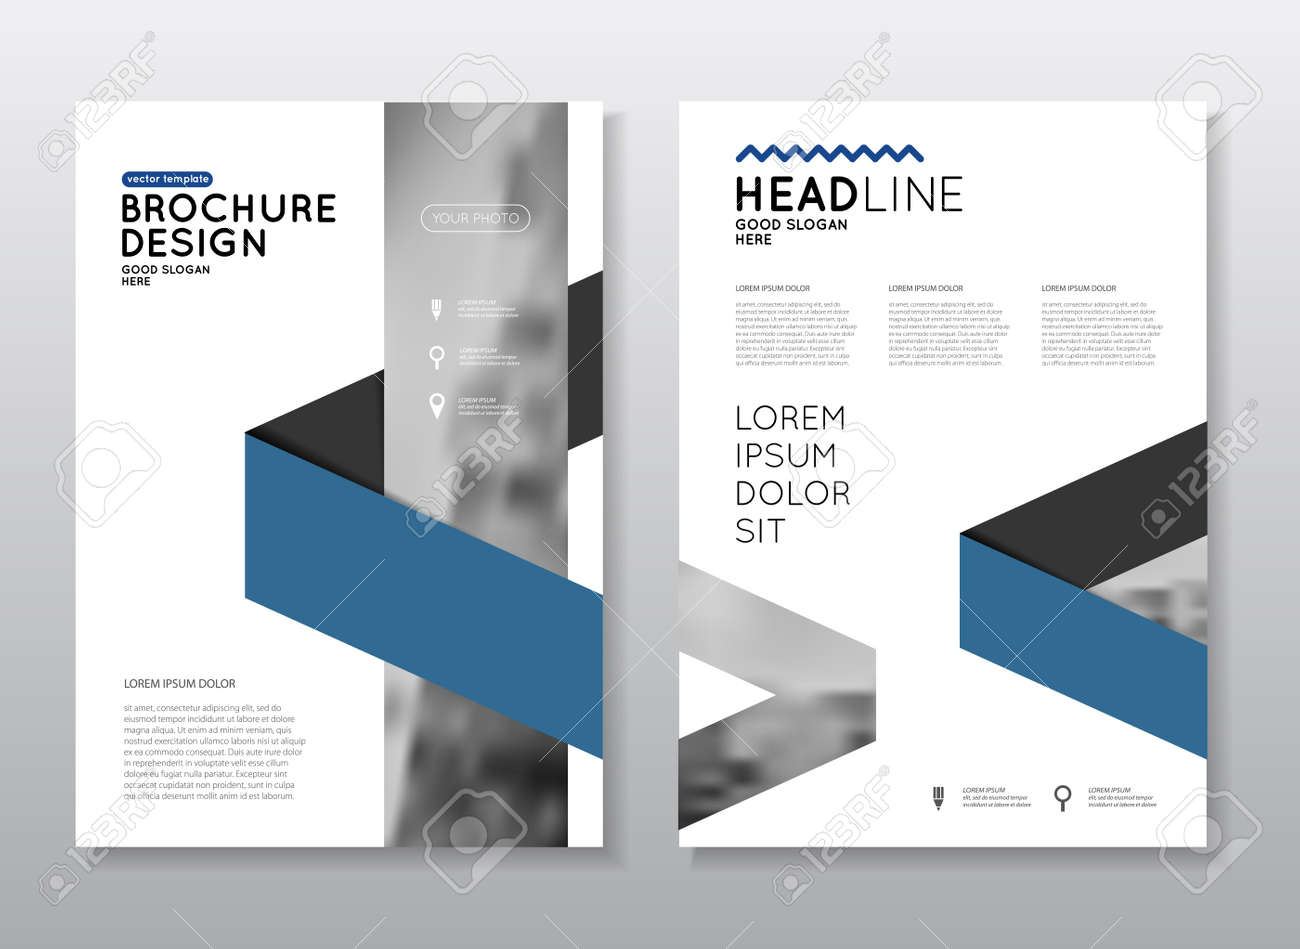 annual report vector illustration brochure with text a4 size